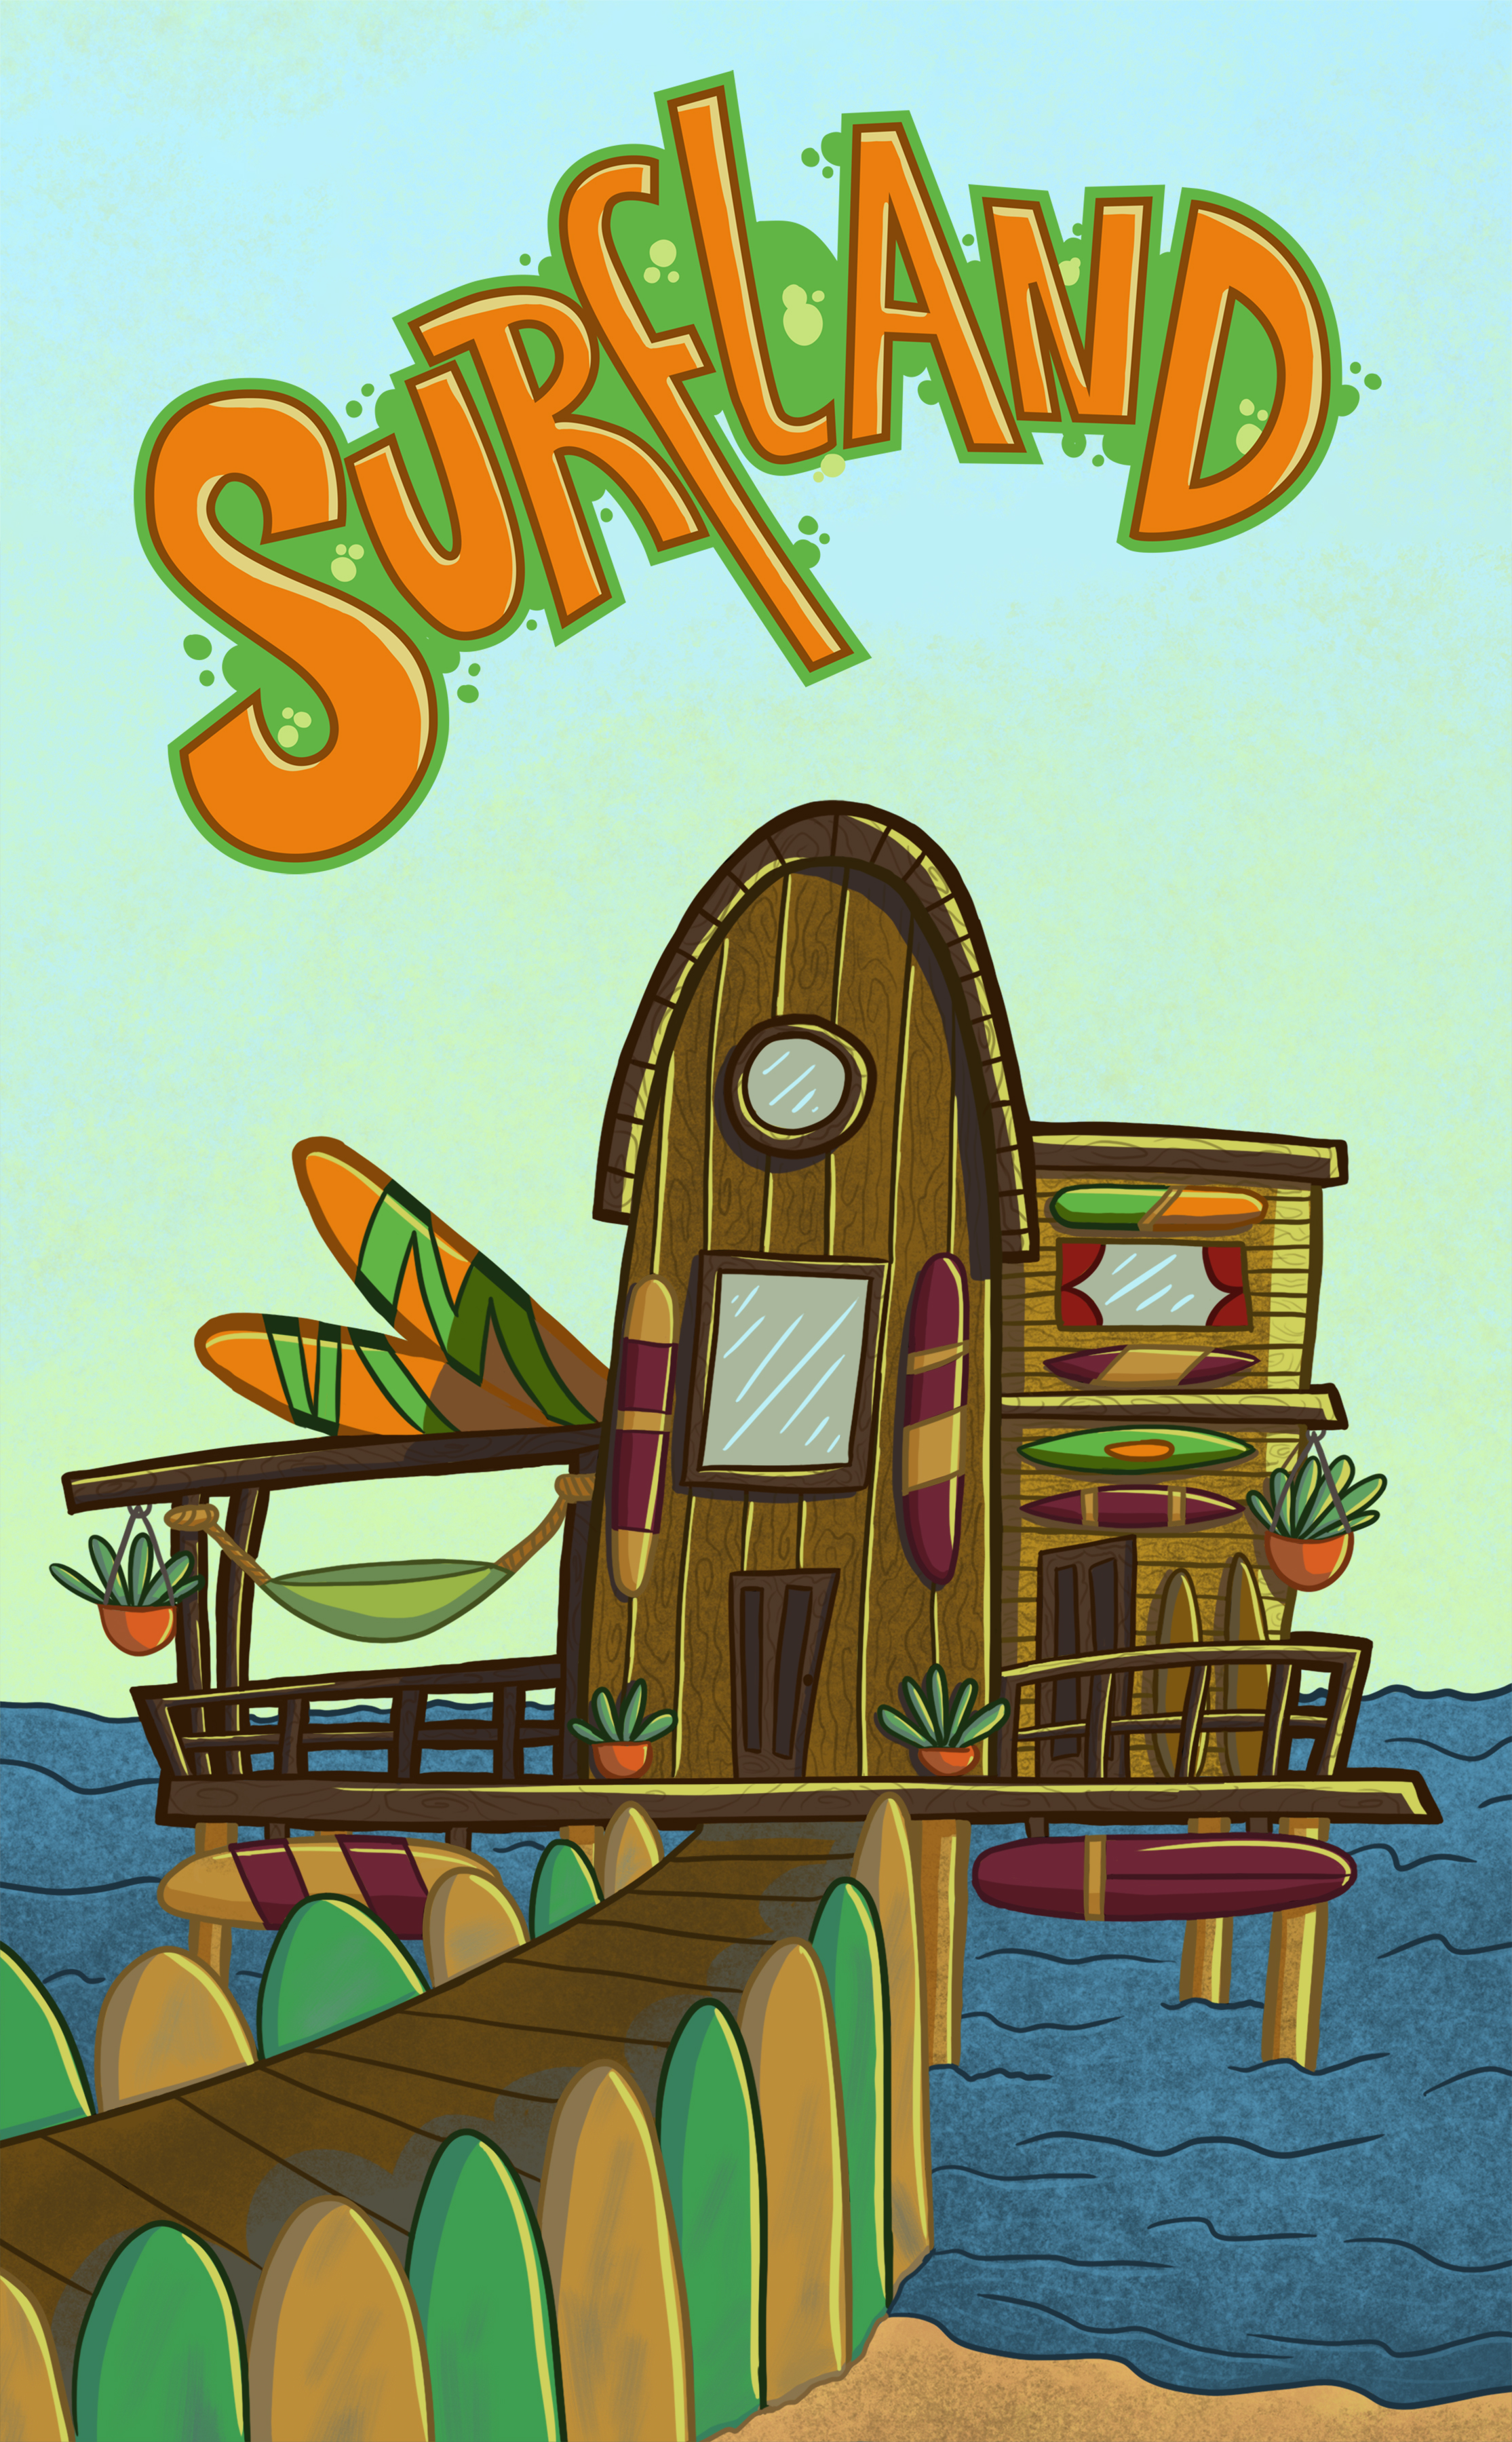 Surfland board shop concept and tittle lettering.